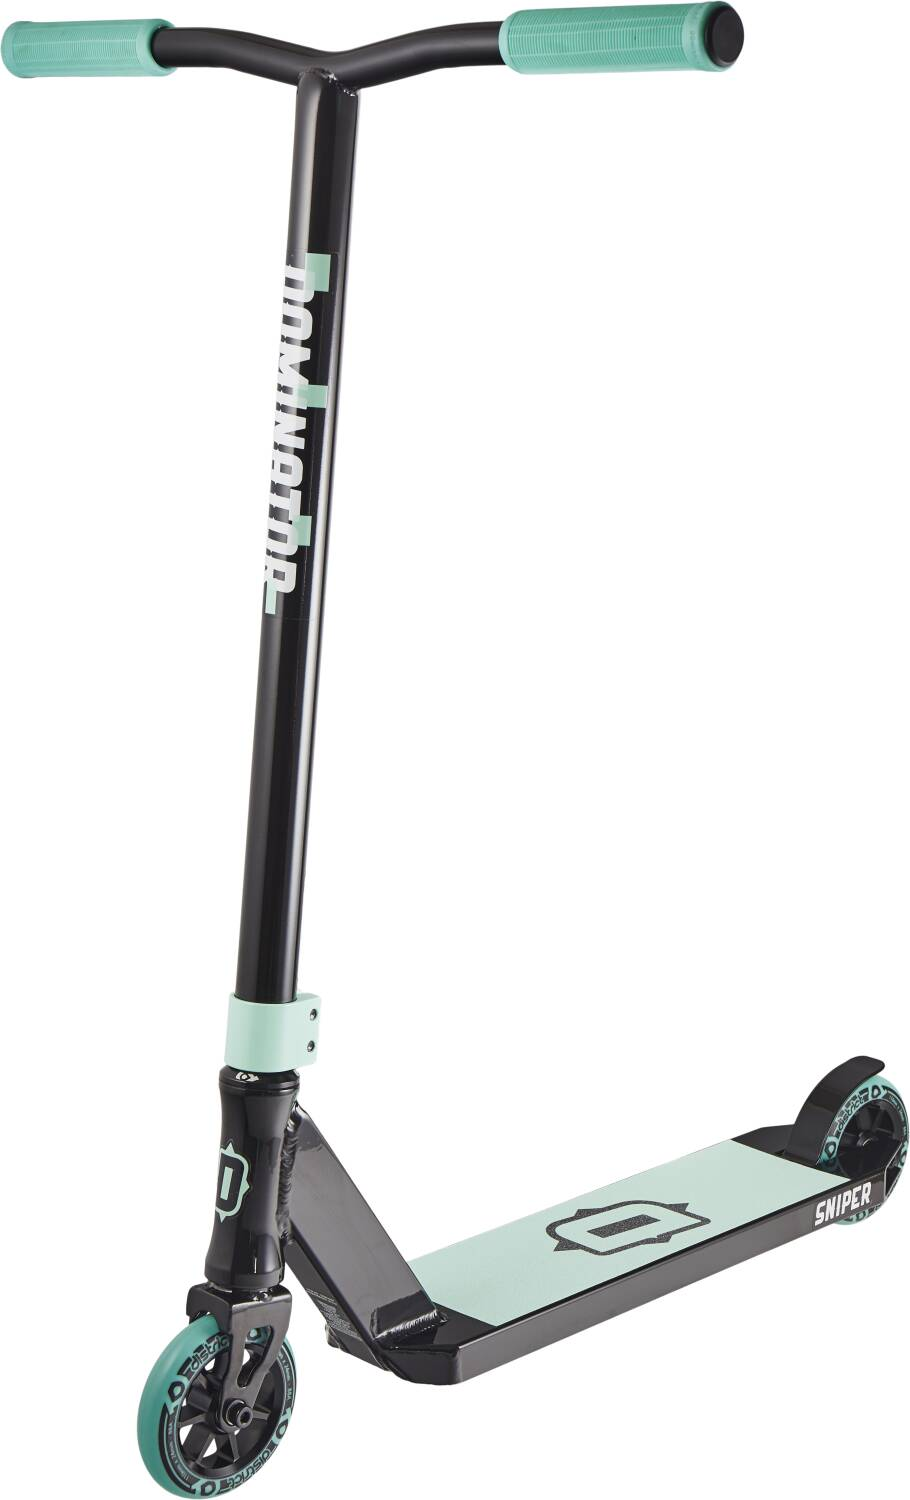 Dominator Sniper Scooter - Black / Mint